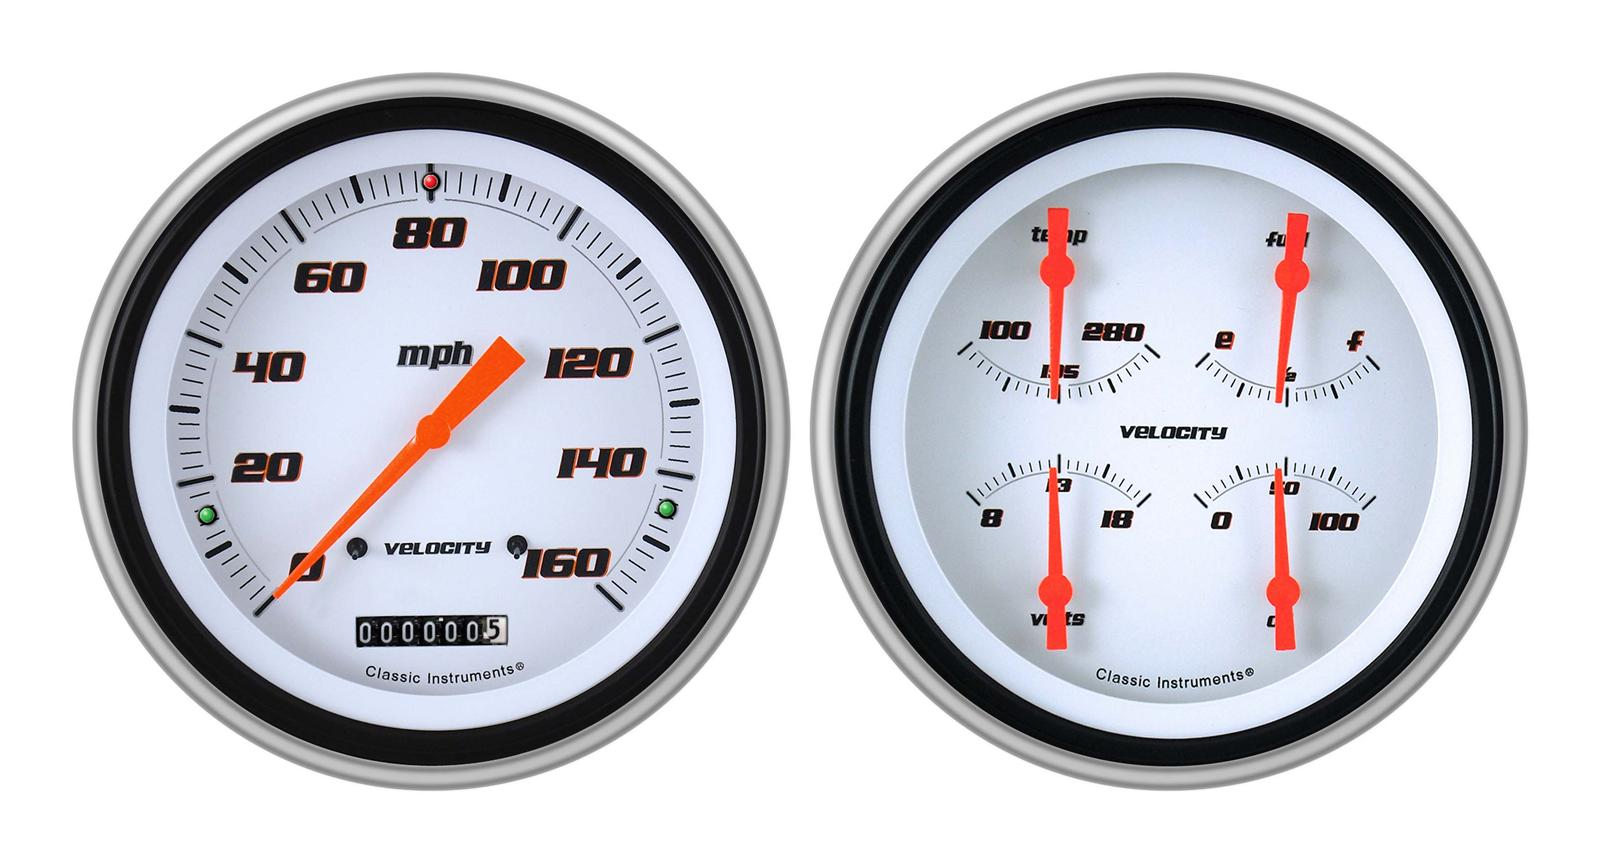 1951 chevrolet styleline deluxe classic instruments 1951-53 chevy package  gauge sets ch51vsw52 - free shipping on orders over $99 at summit racing